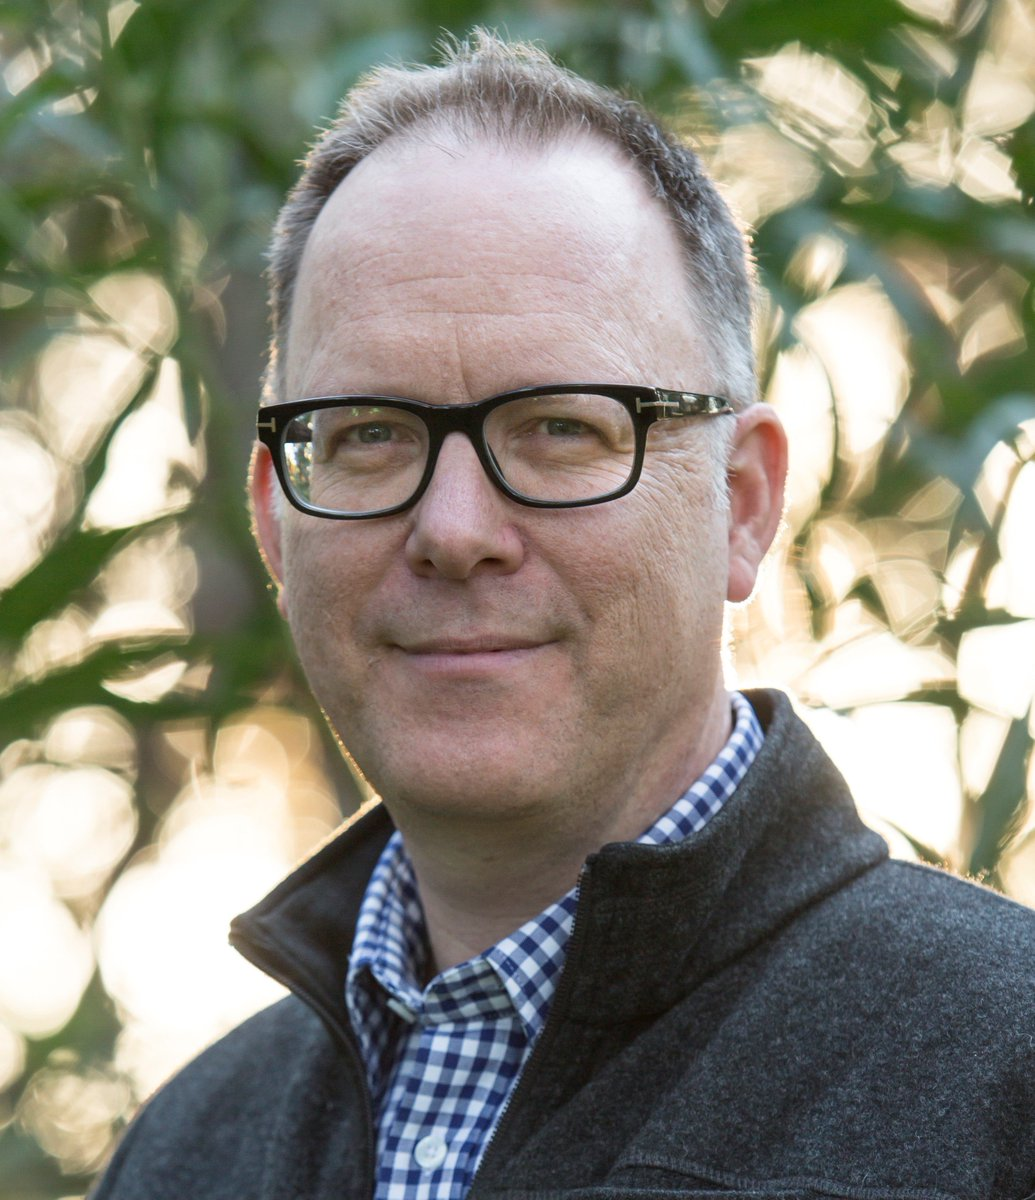 .@Gollancz has bought Australian author Garth Nix's first adult novels, to publish in October 2019: https://t.co/1sVZkWvaX9